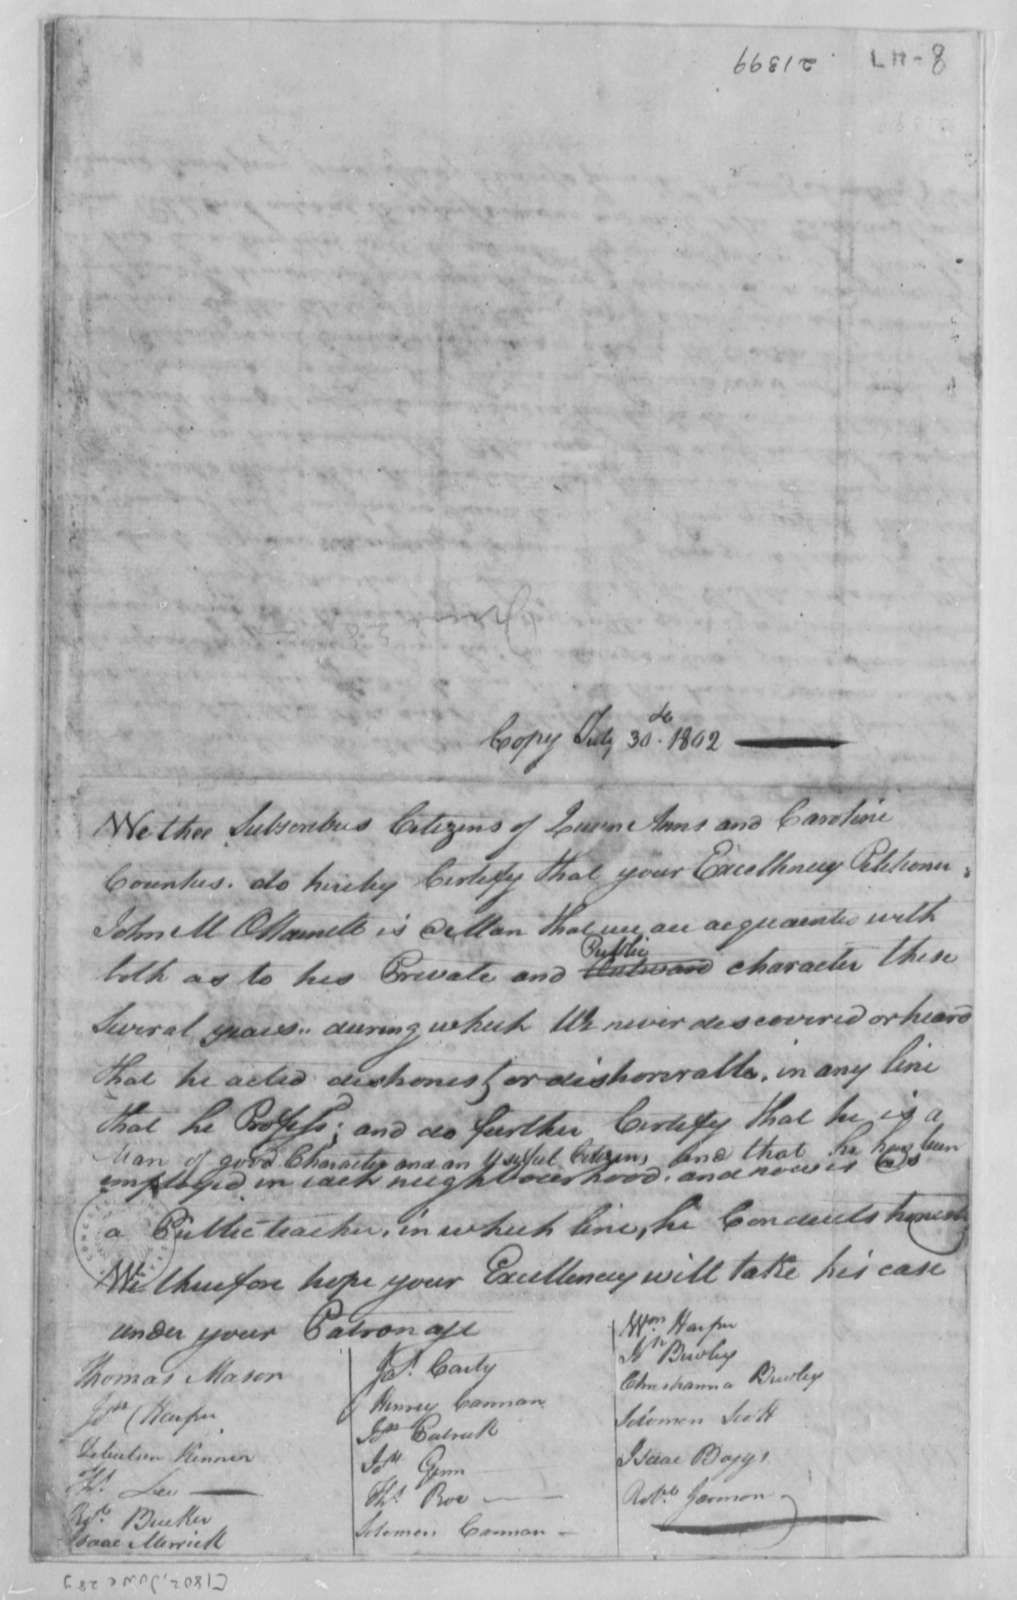 Queen Ann and Caroline County Citizens to Thomas Jefferson, July 30, 1802, O'Harnett's Good Character